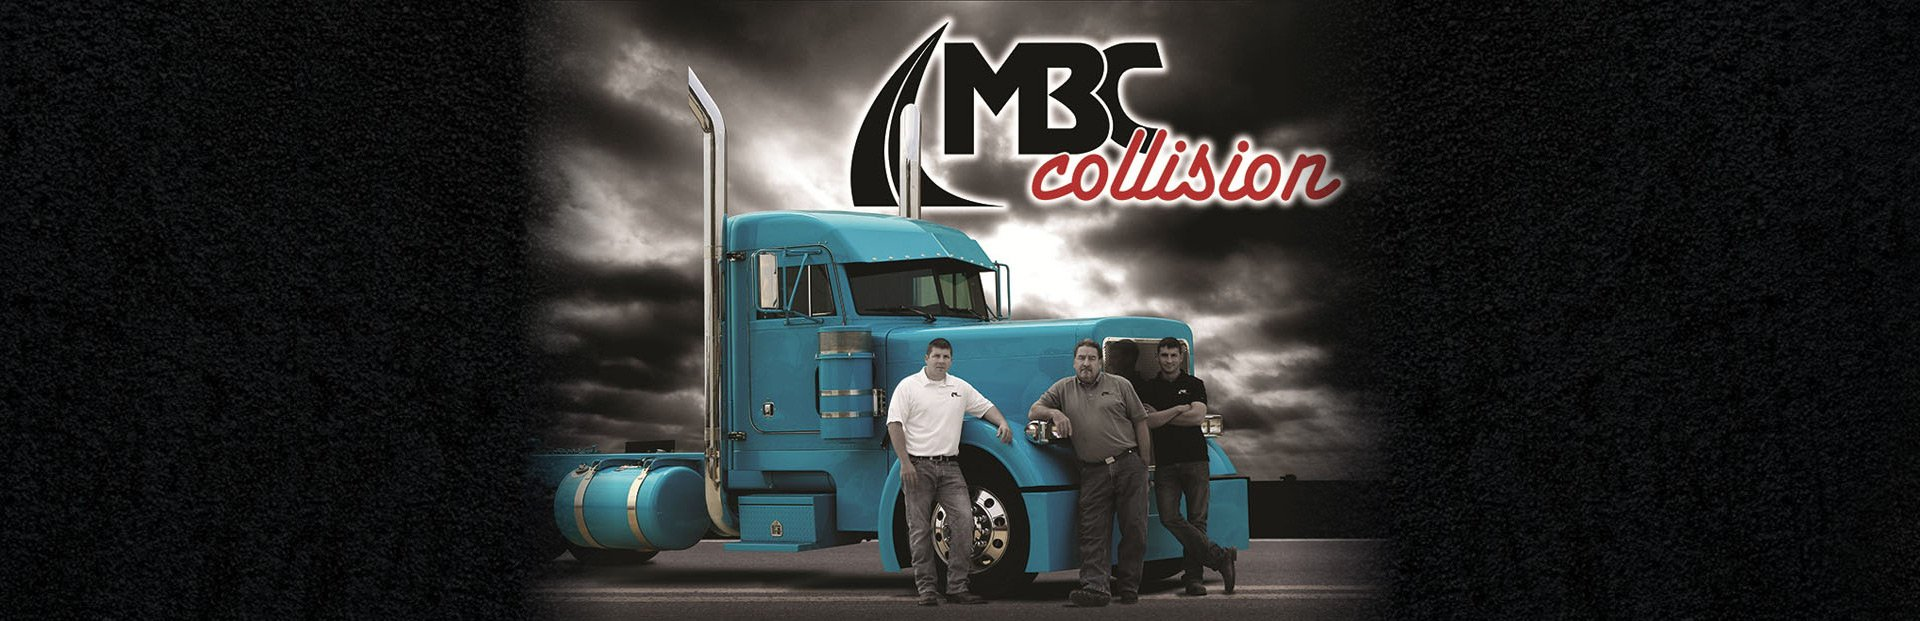 About MBC Collision, truck & body paint repair shop in Springfield IL